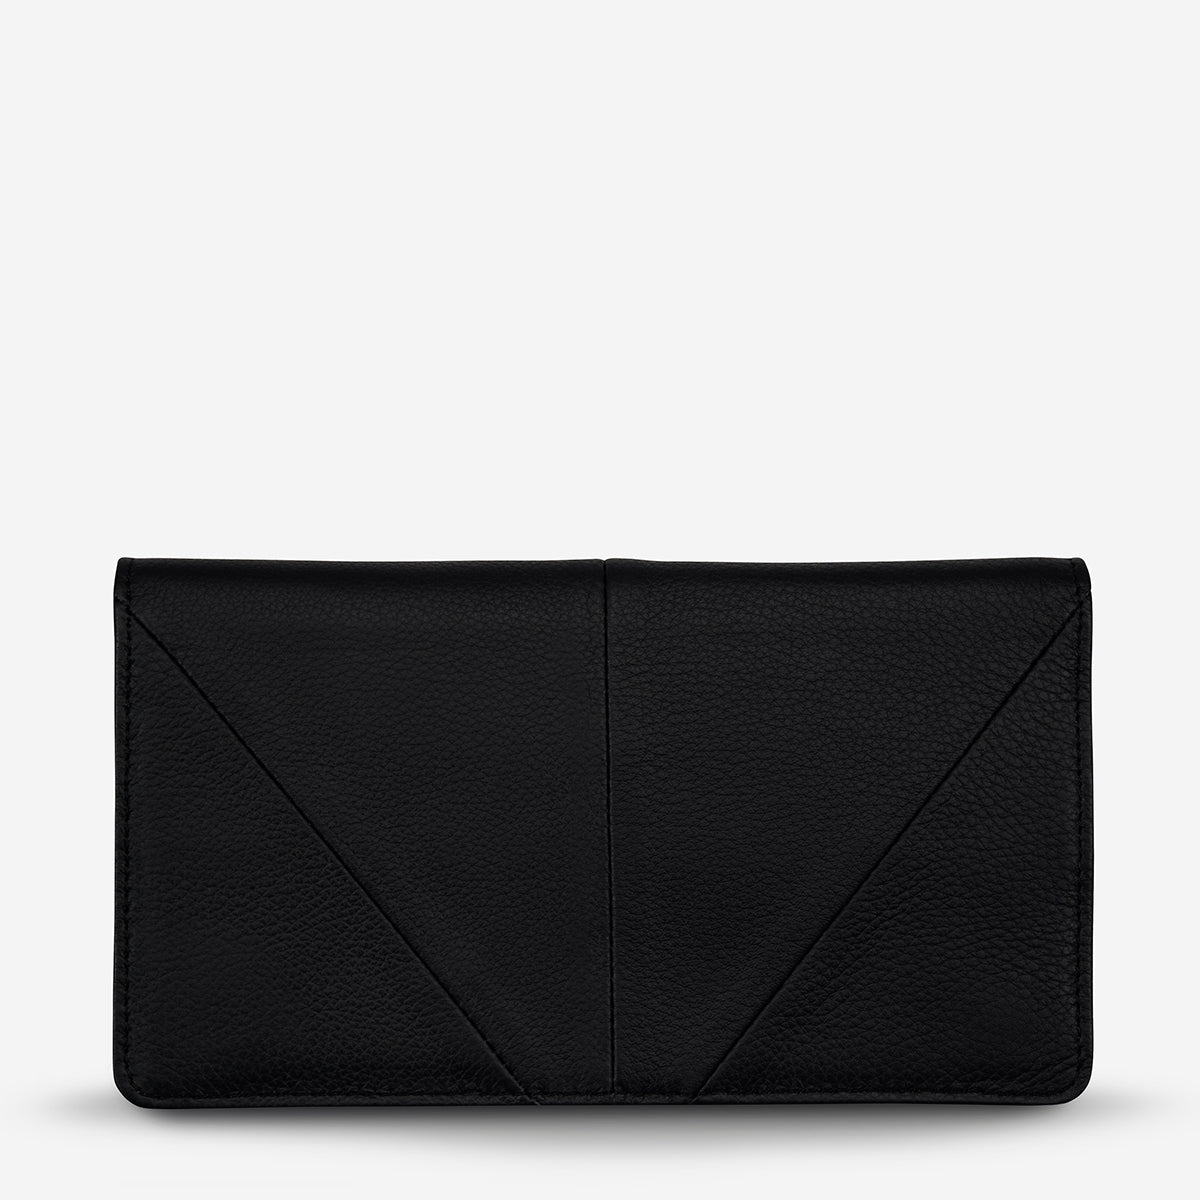 Status Anxiety Triple Threat Leather Wallet - Black